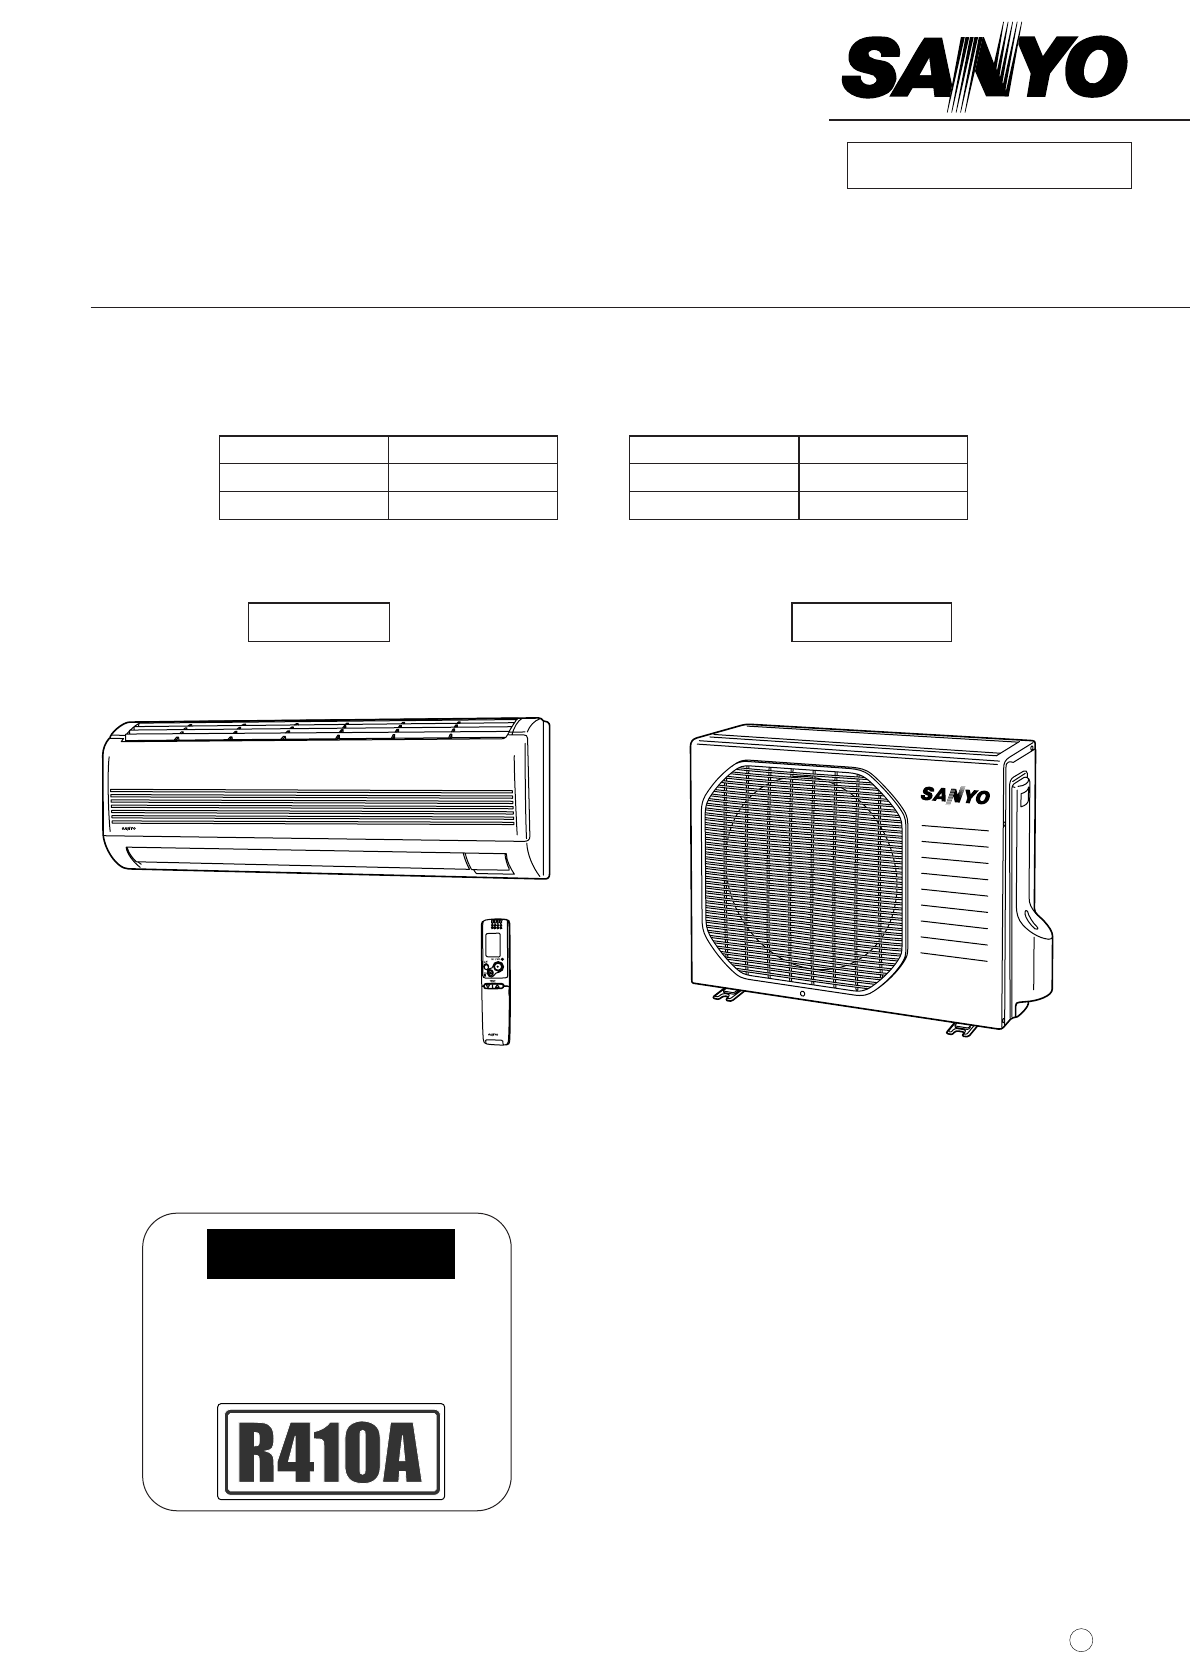 tornado air conditioner manual english